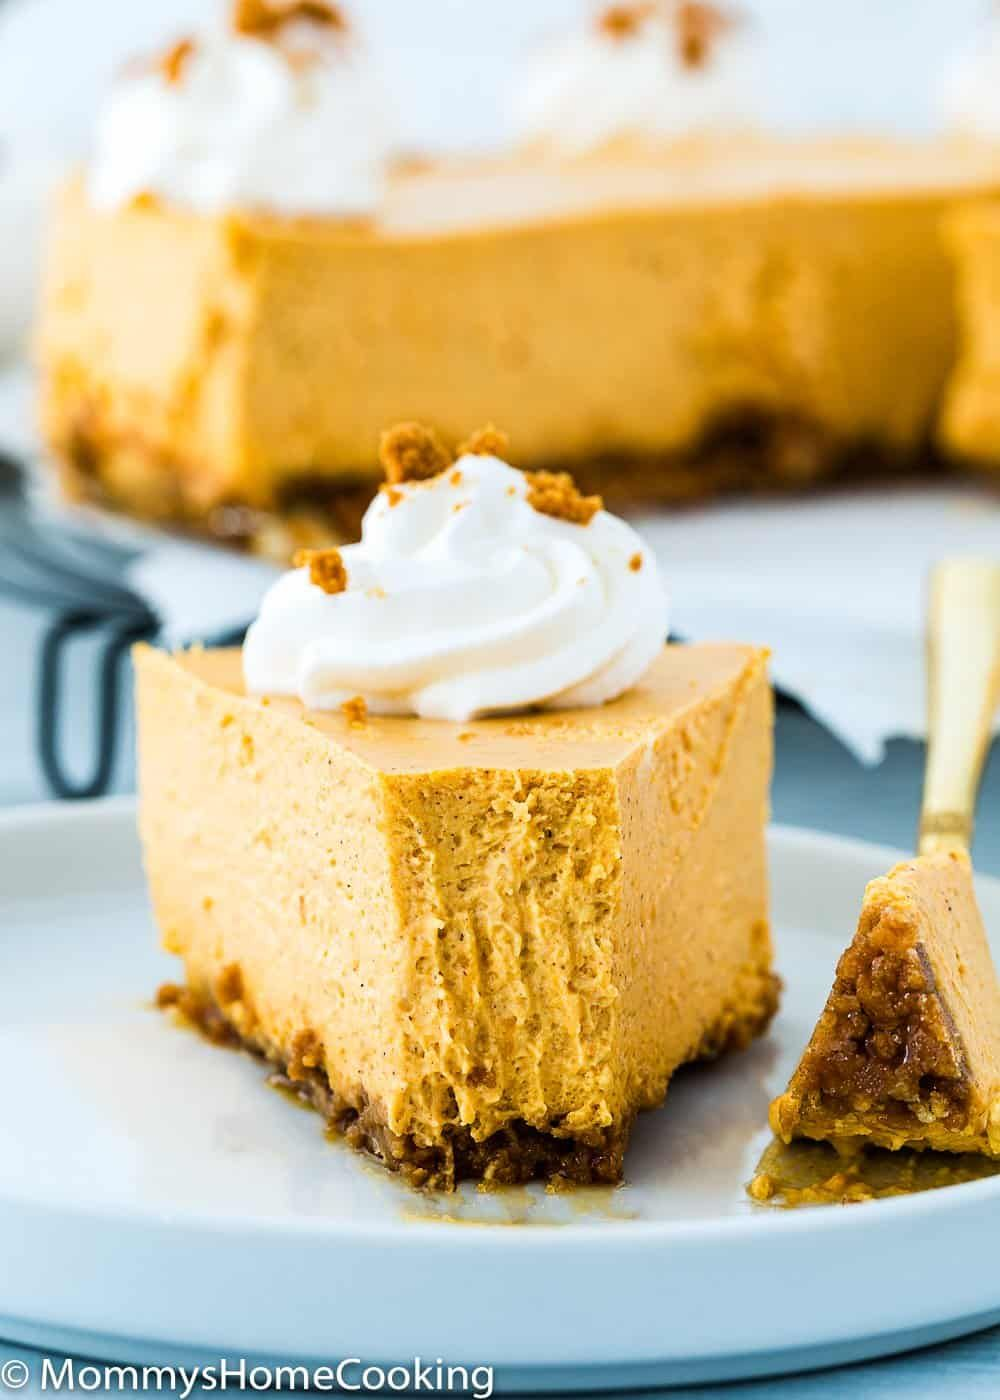 Eggless Pumpkin Cheesecake Recipe Recipe In 2020 Cheesecake Recipes Pumpkin Cheesecake Recipes Pumpkin Cheesecake